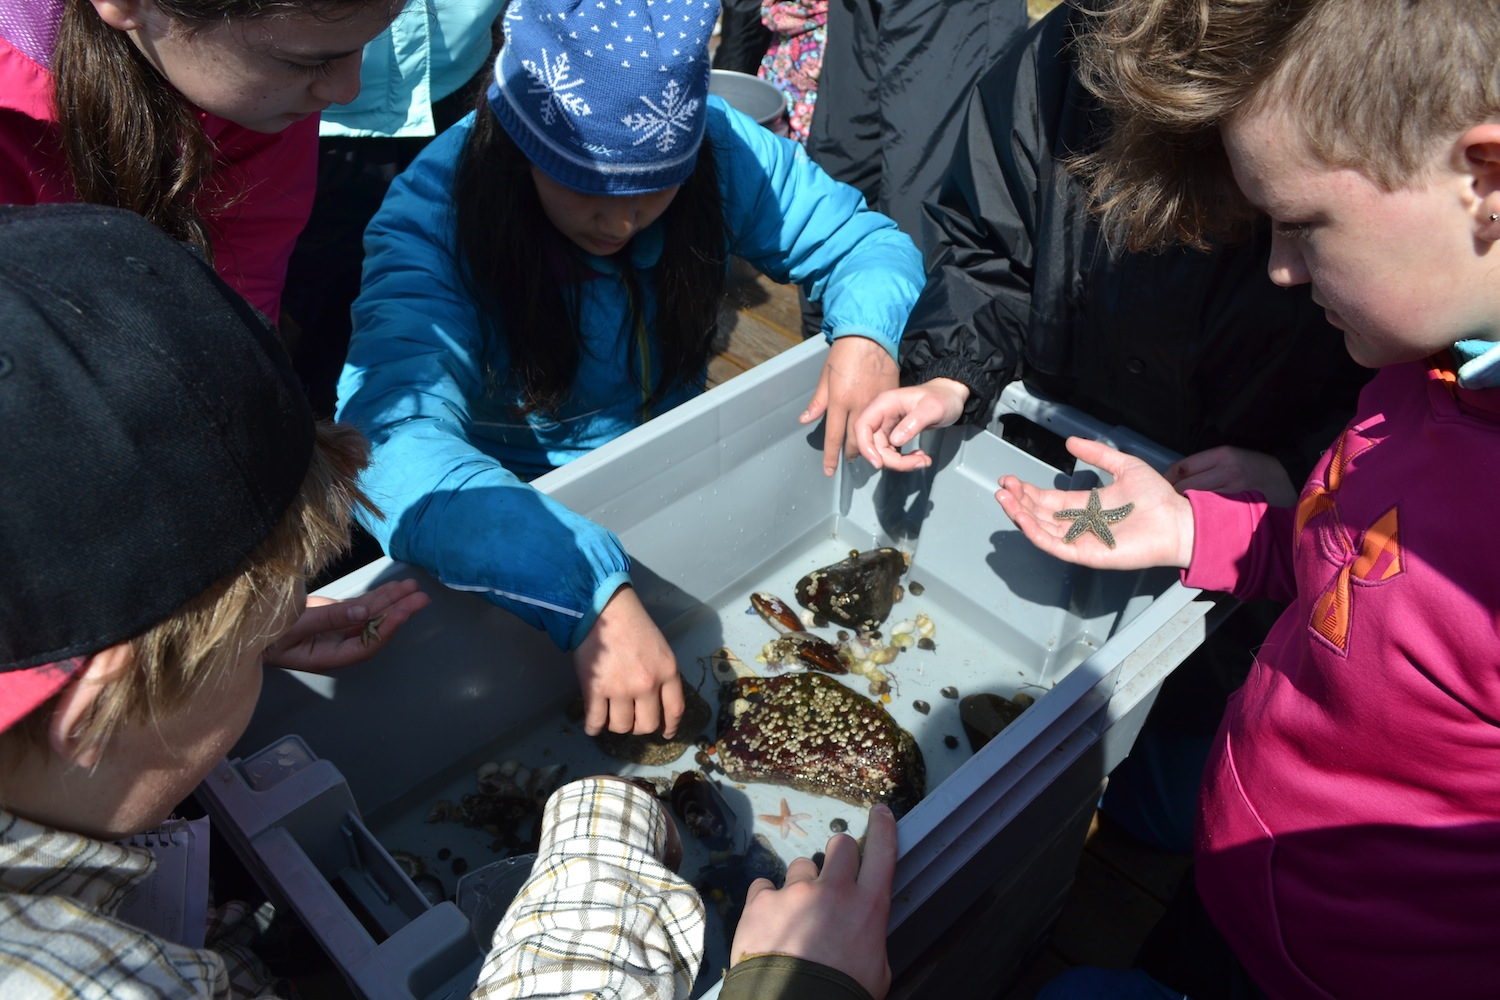 Students gather around fish totes to examine their invertebrate collections from the days low tide